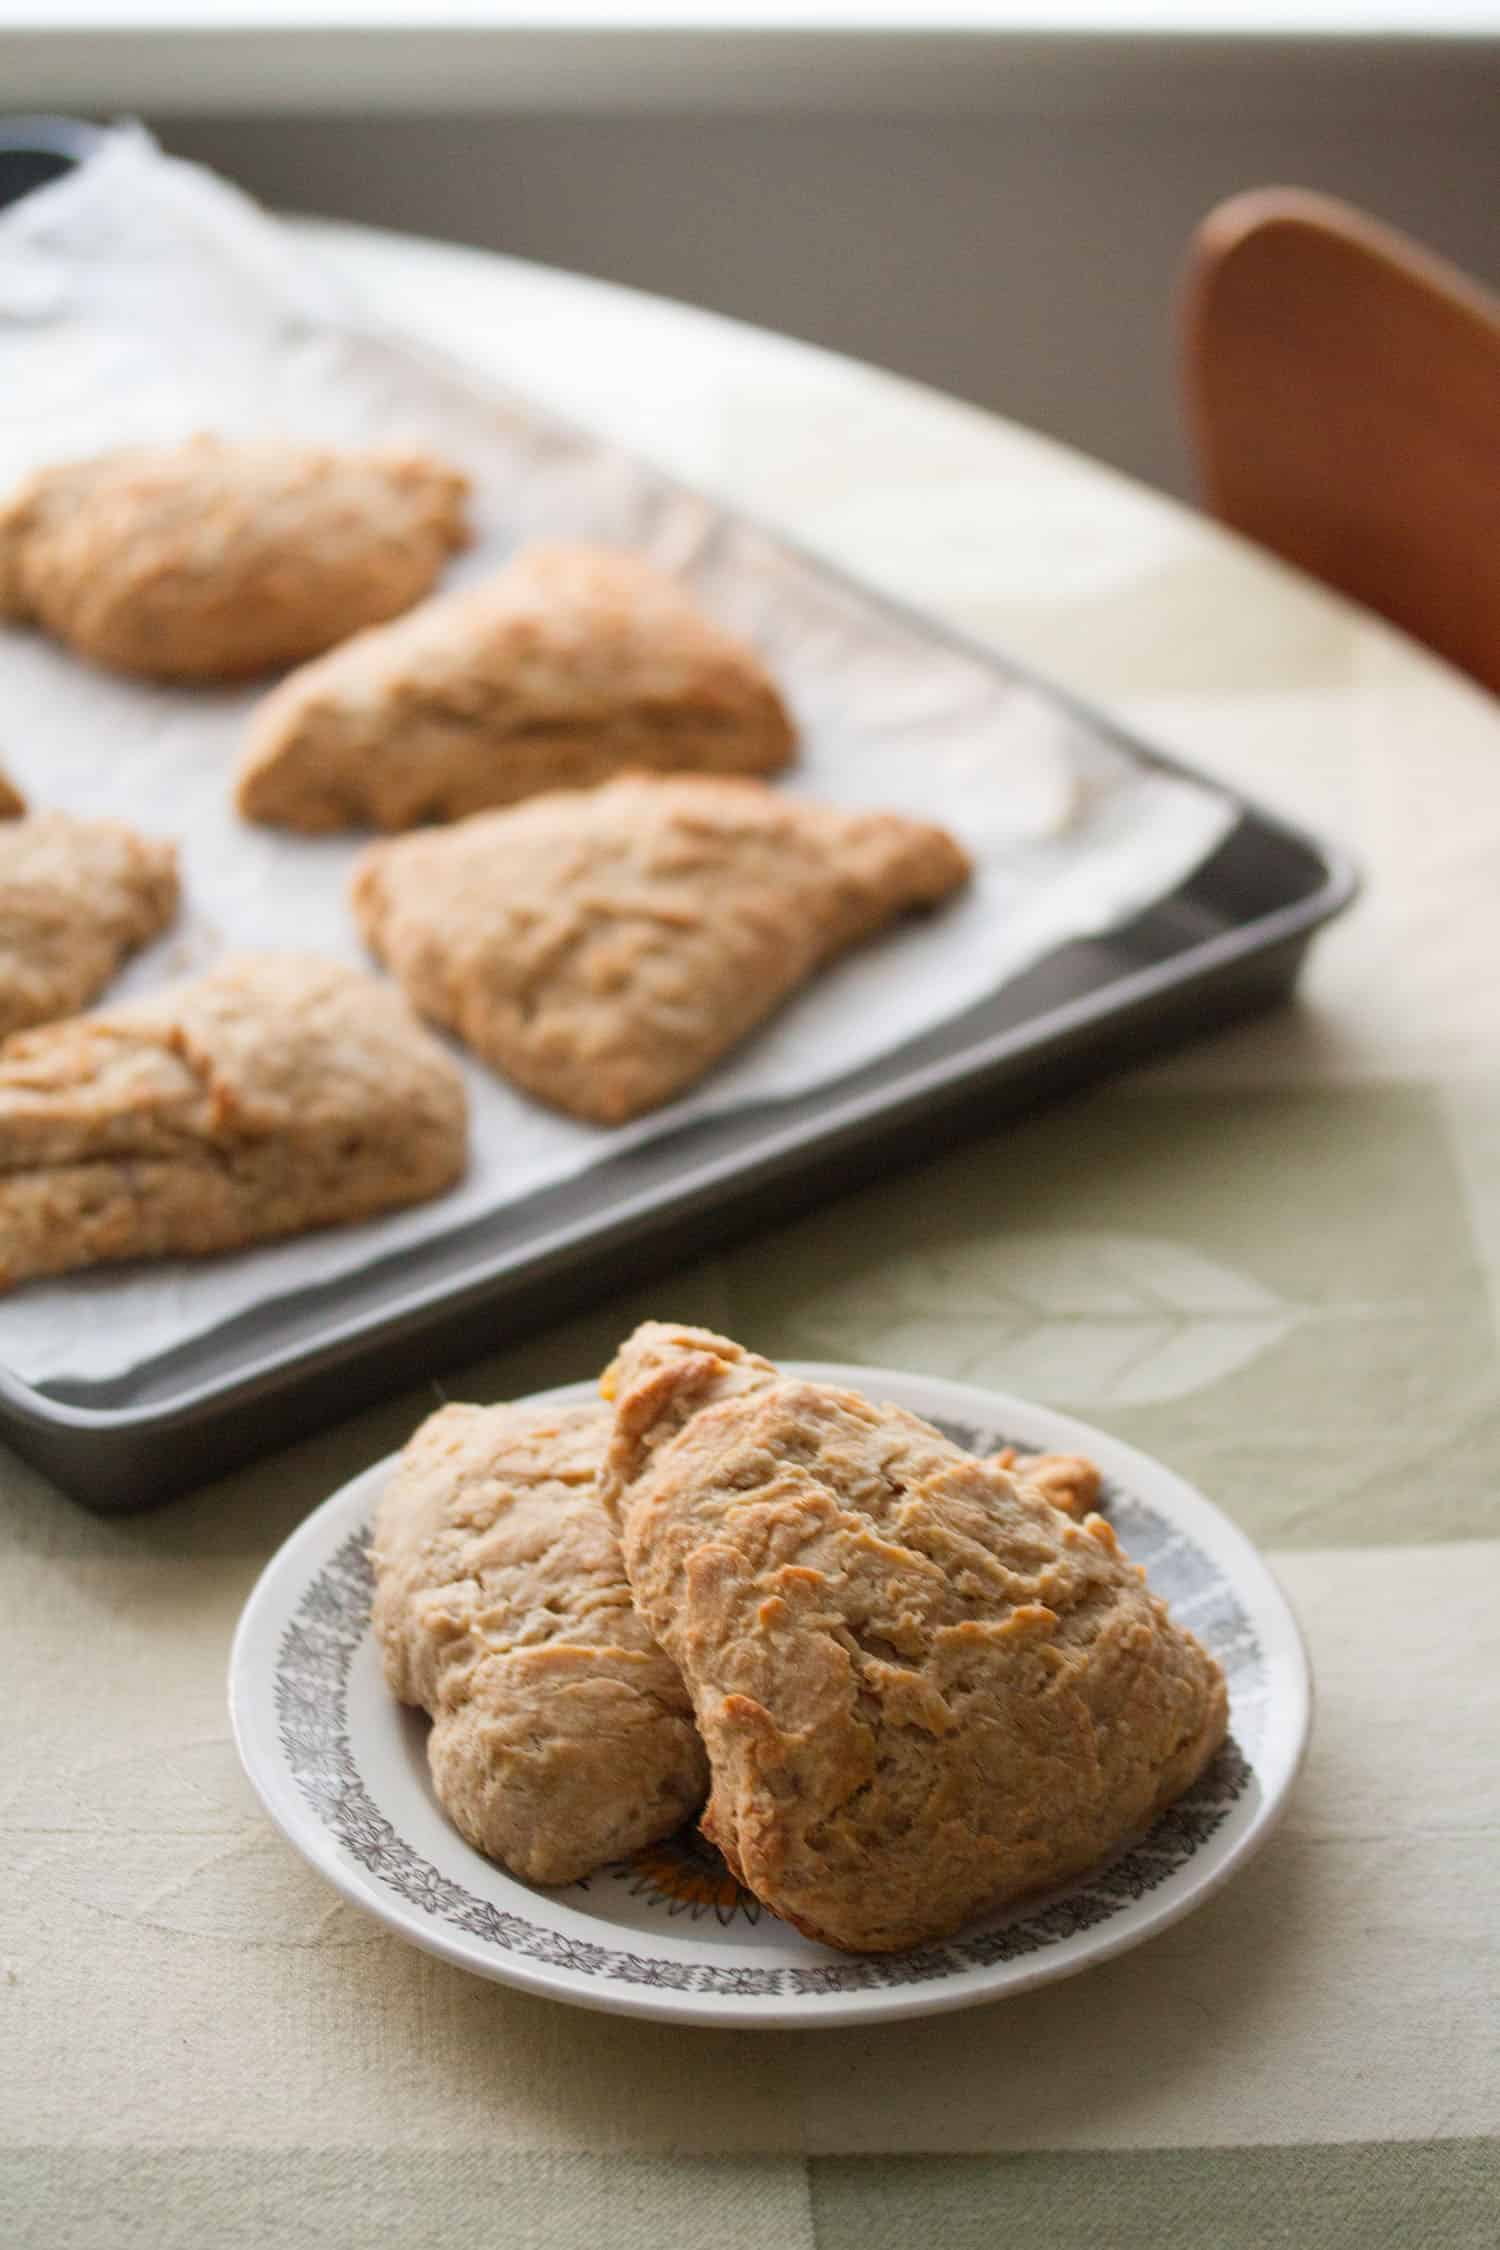 Game of Scones: Banana Bread Scones